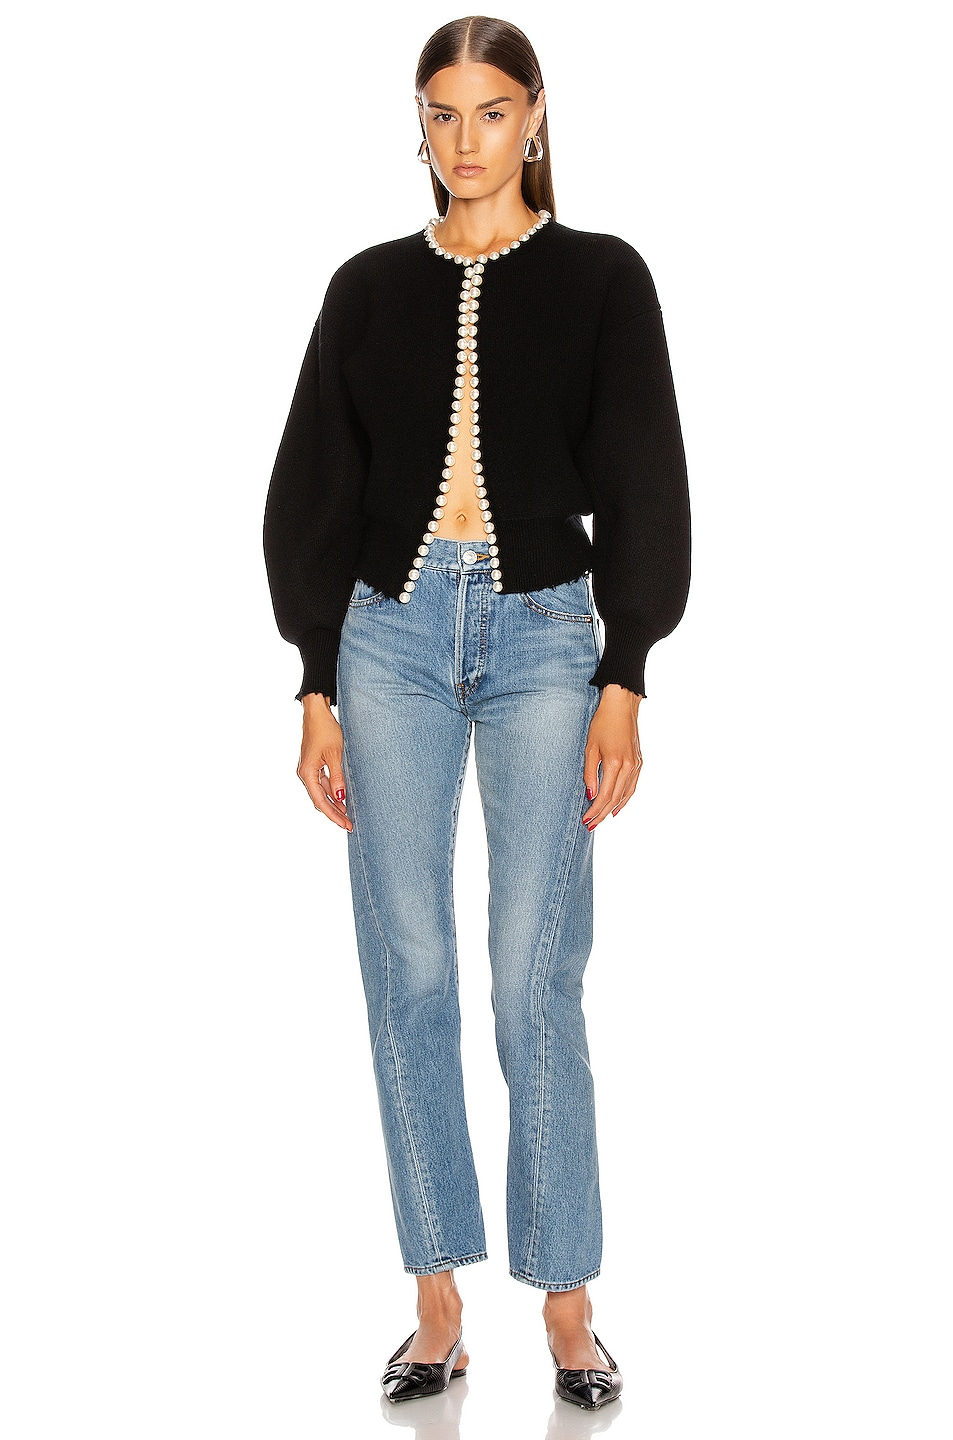 Image 4 of Alexander Wang Pearl Placket Cropped Cardigan in Black